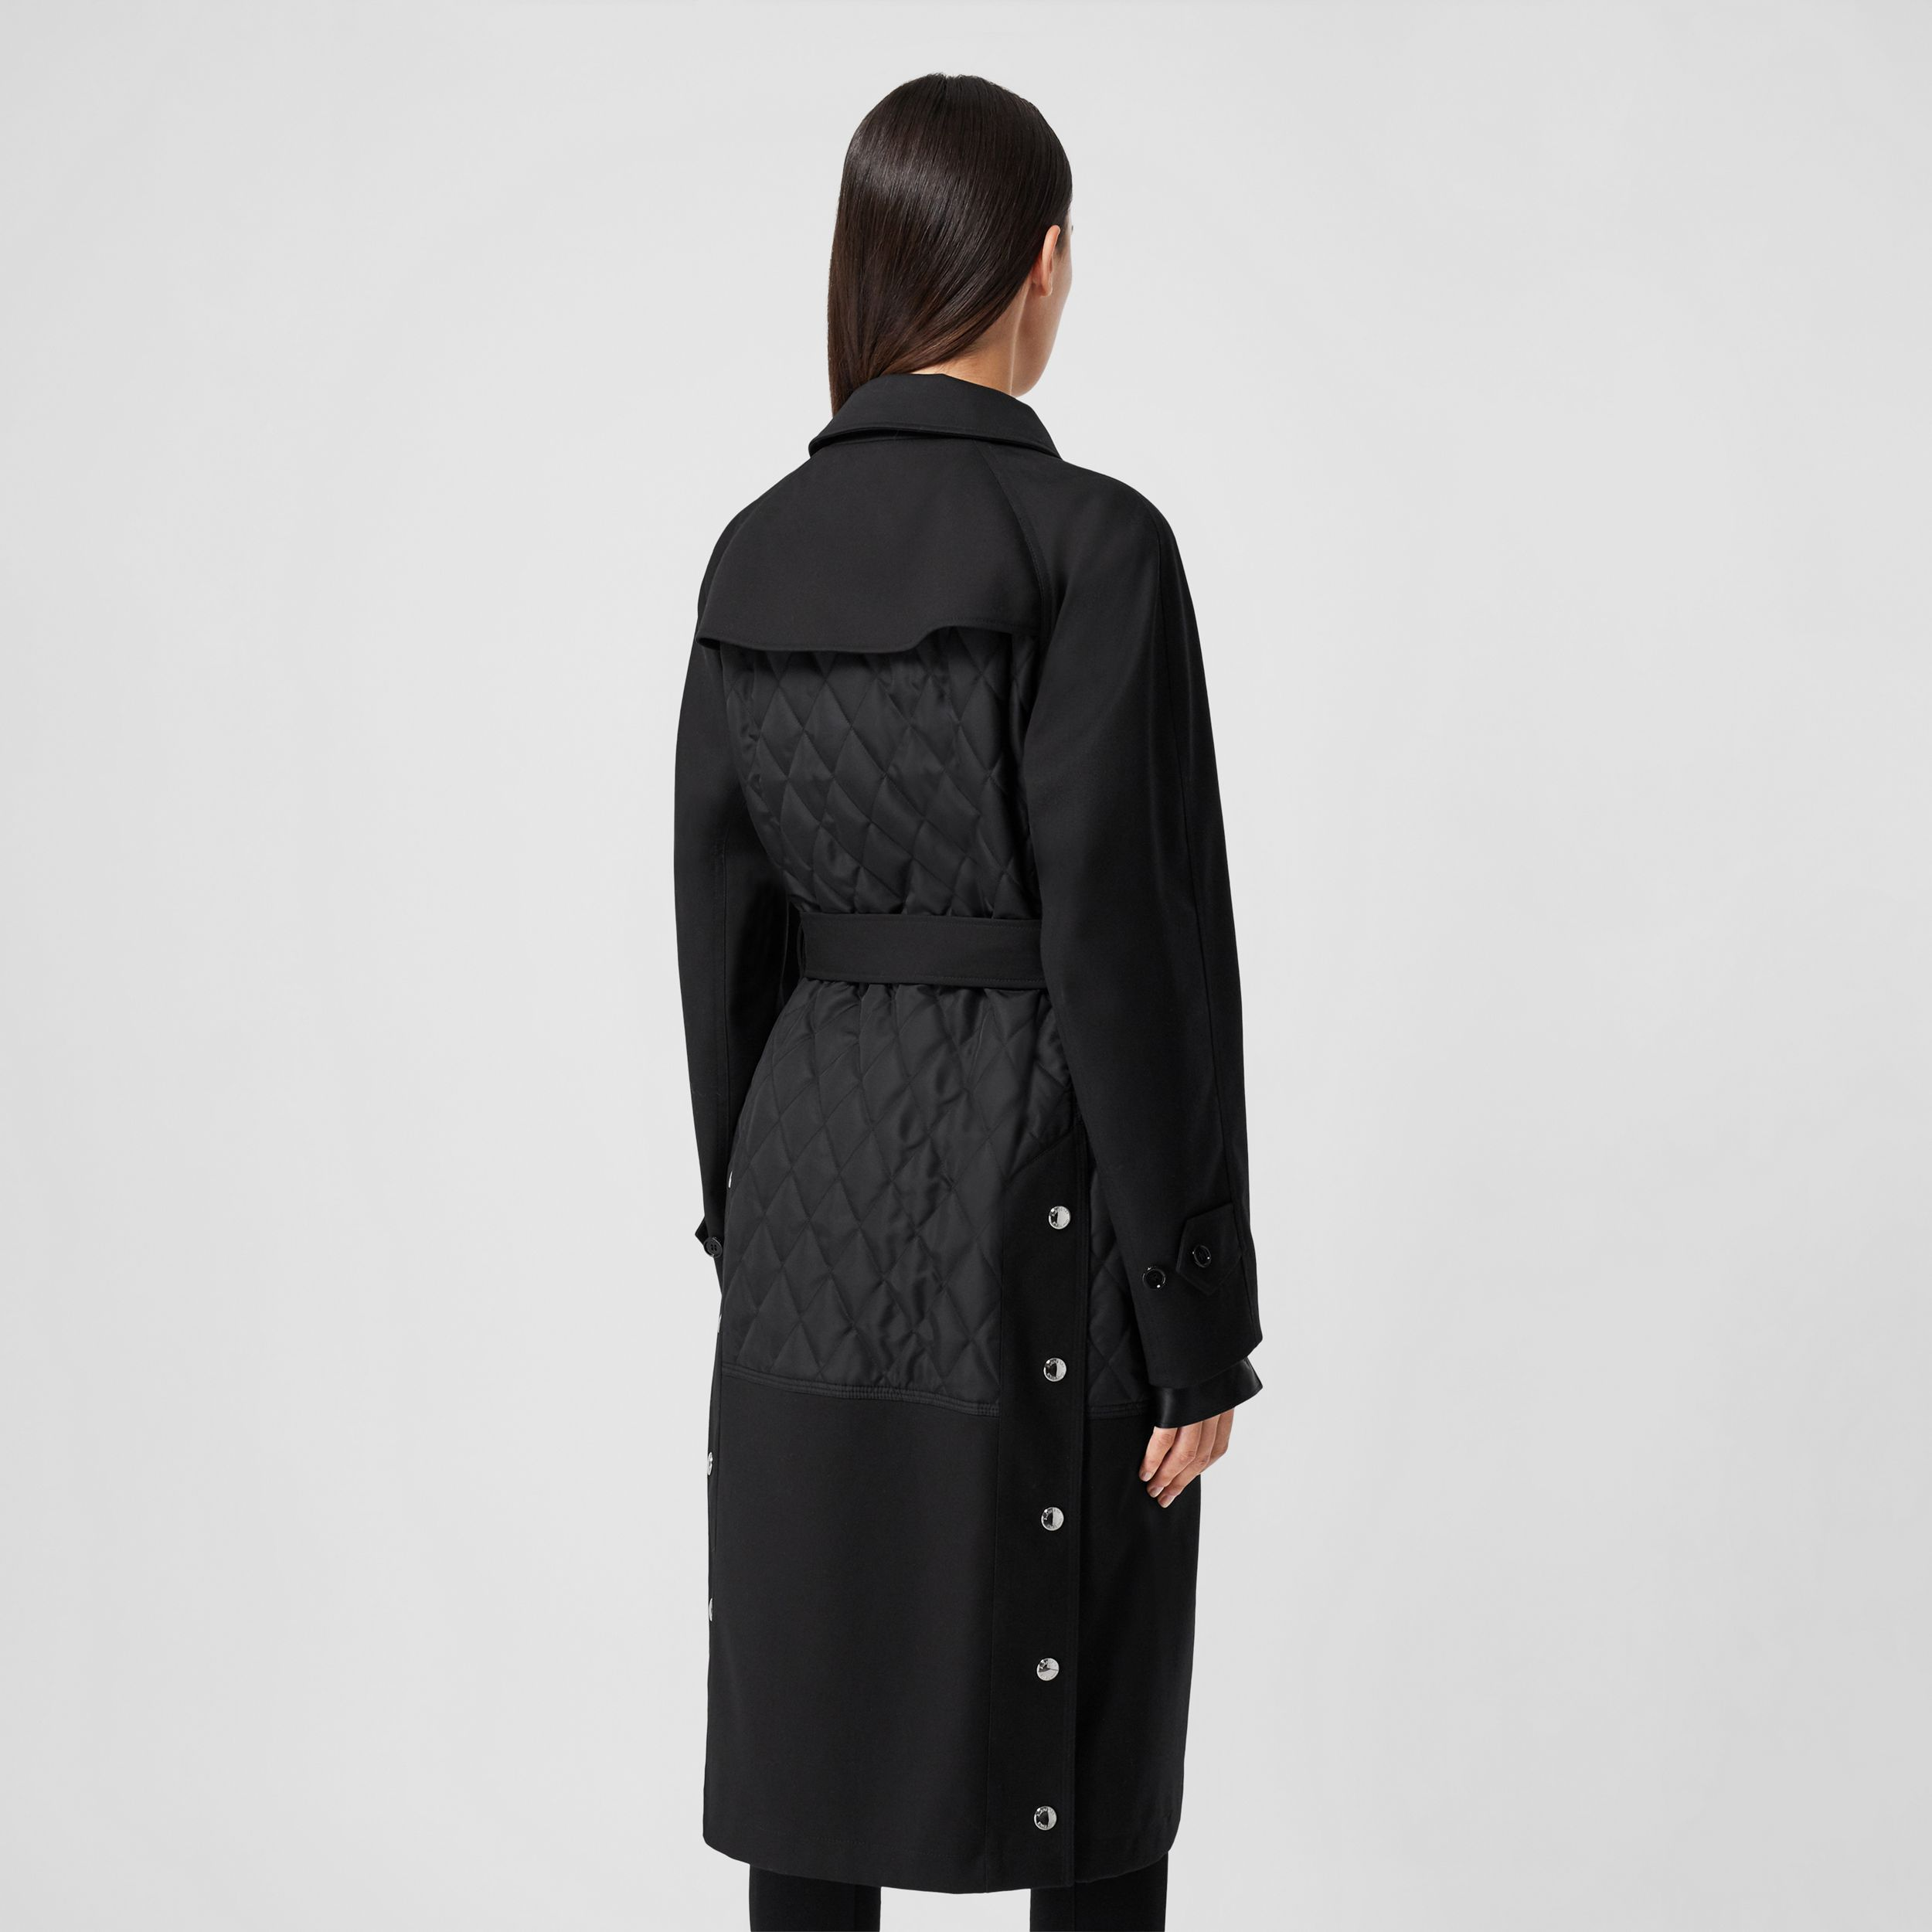 Diamond Quilted Panel Cotton Gabardine Car Coat in Black - Women | Burberry - 3